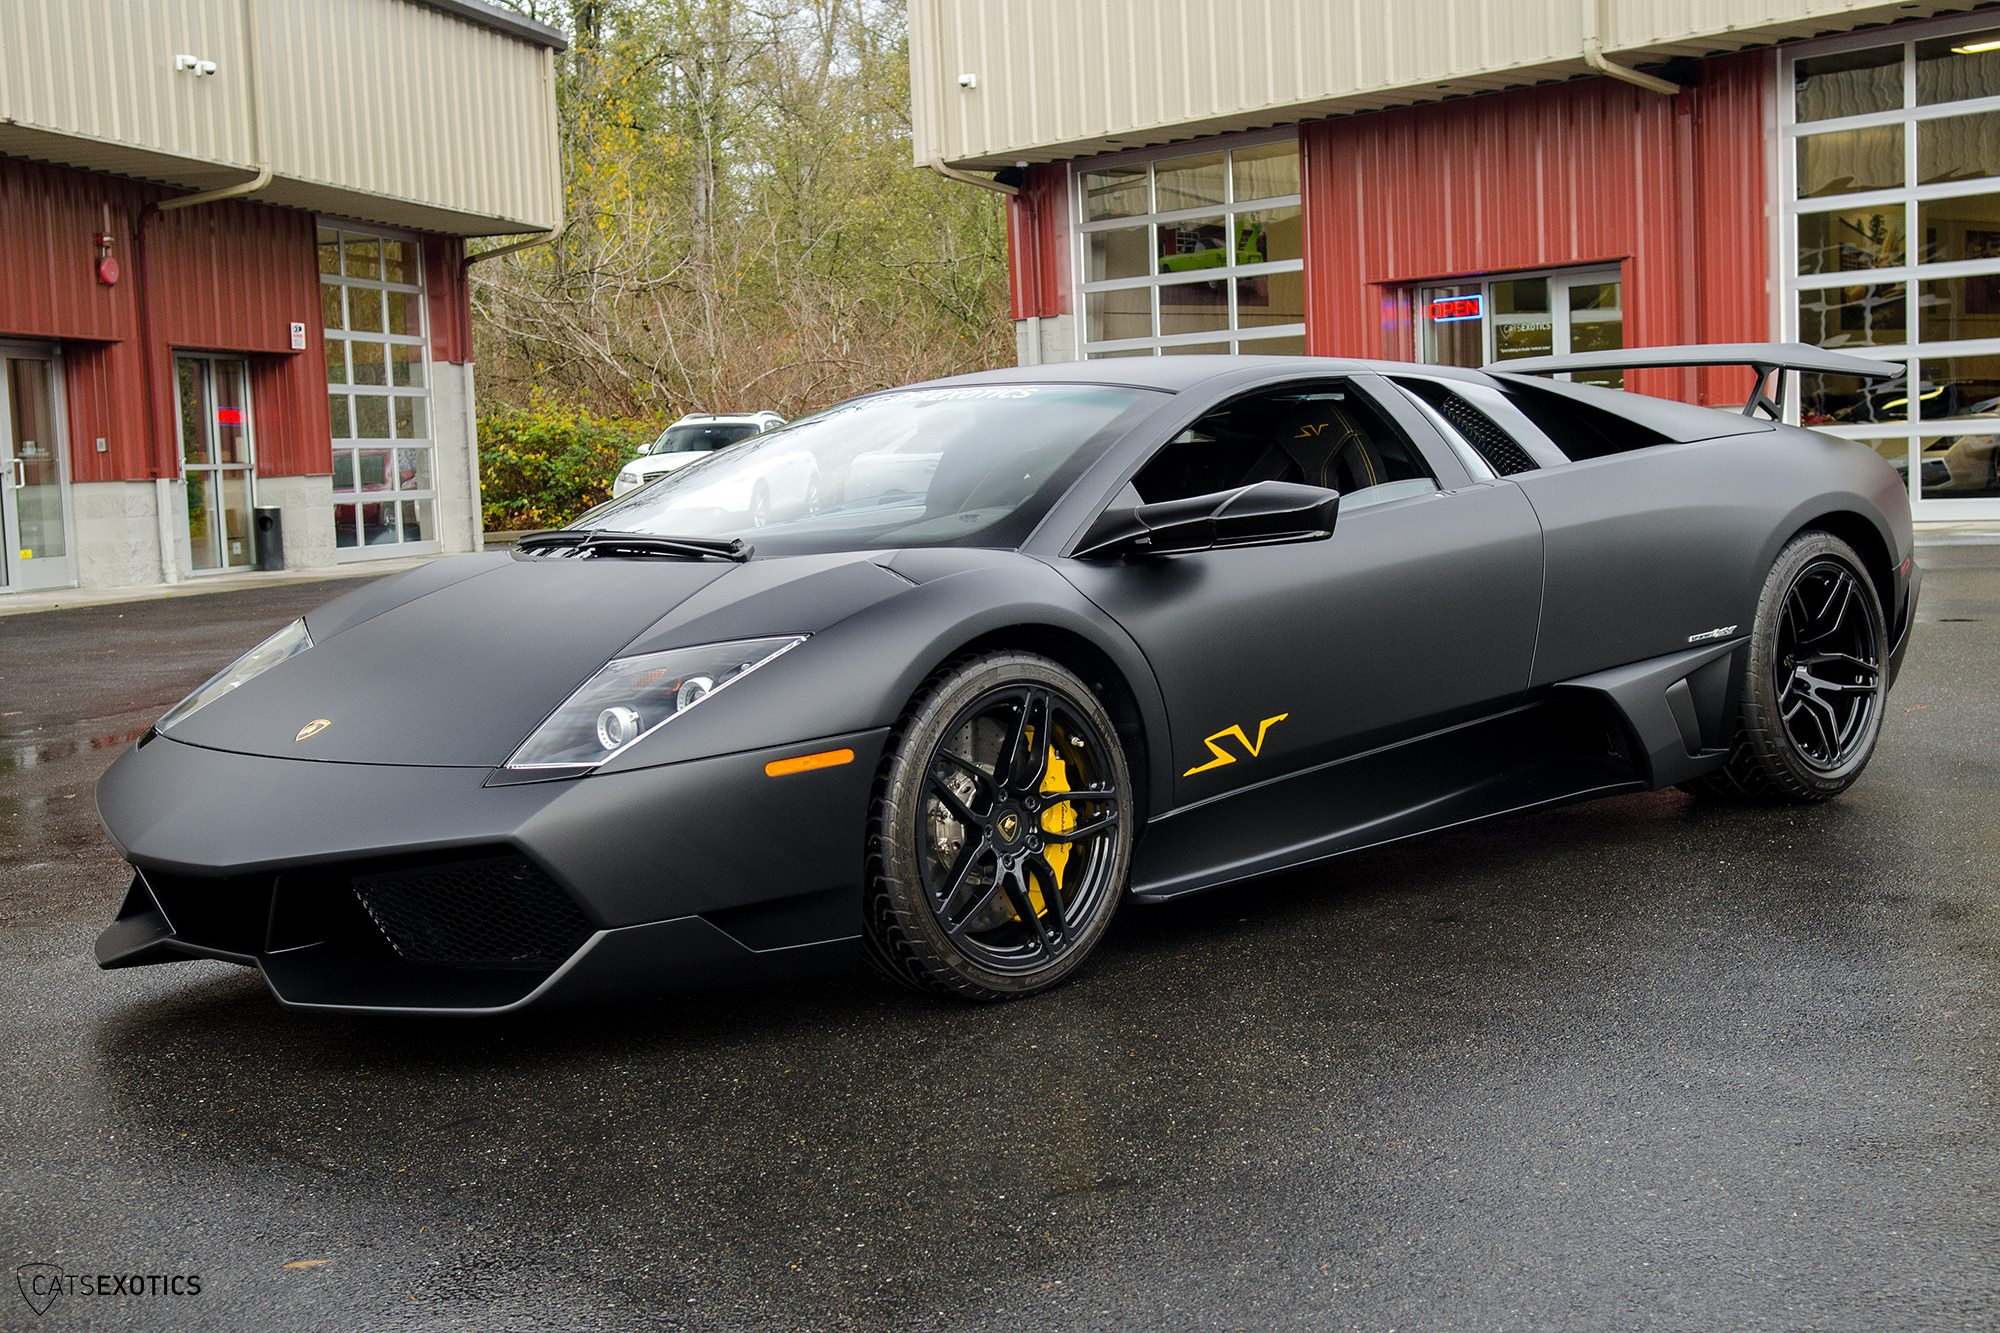 Nero Nemesis Lamborghini Murcielago Sv Sale 574888 on classic cars for sale